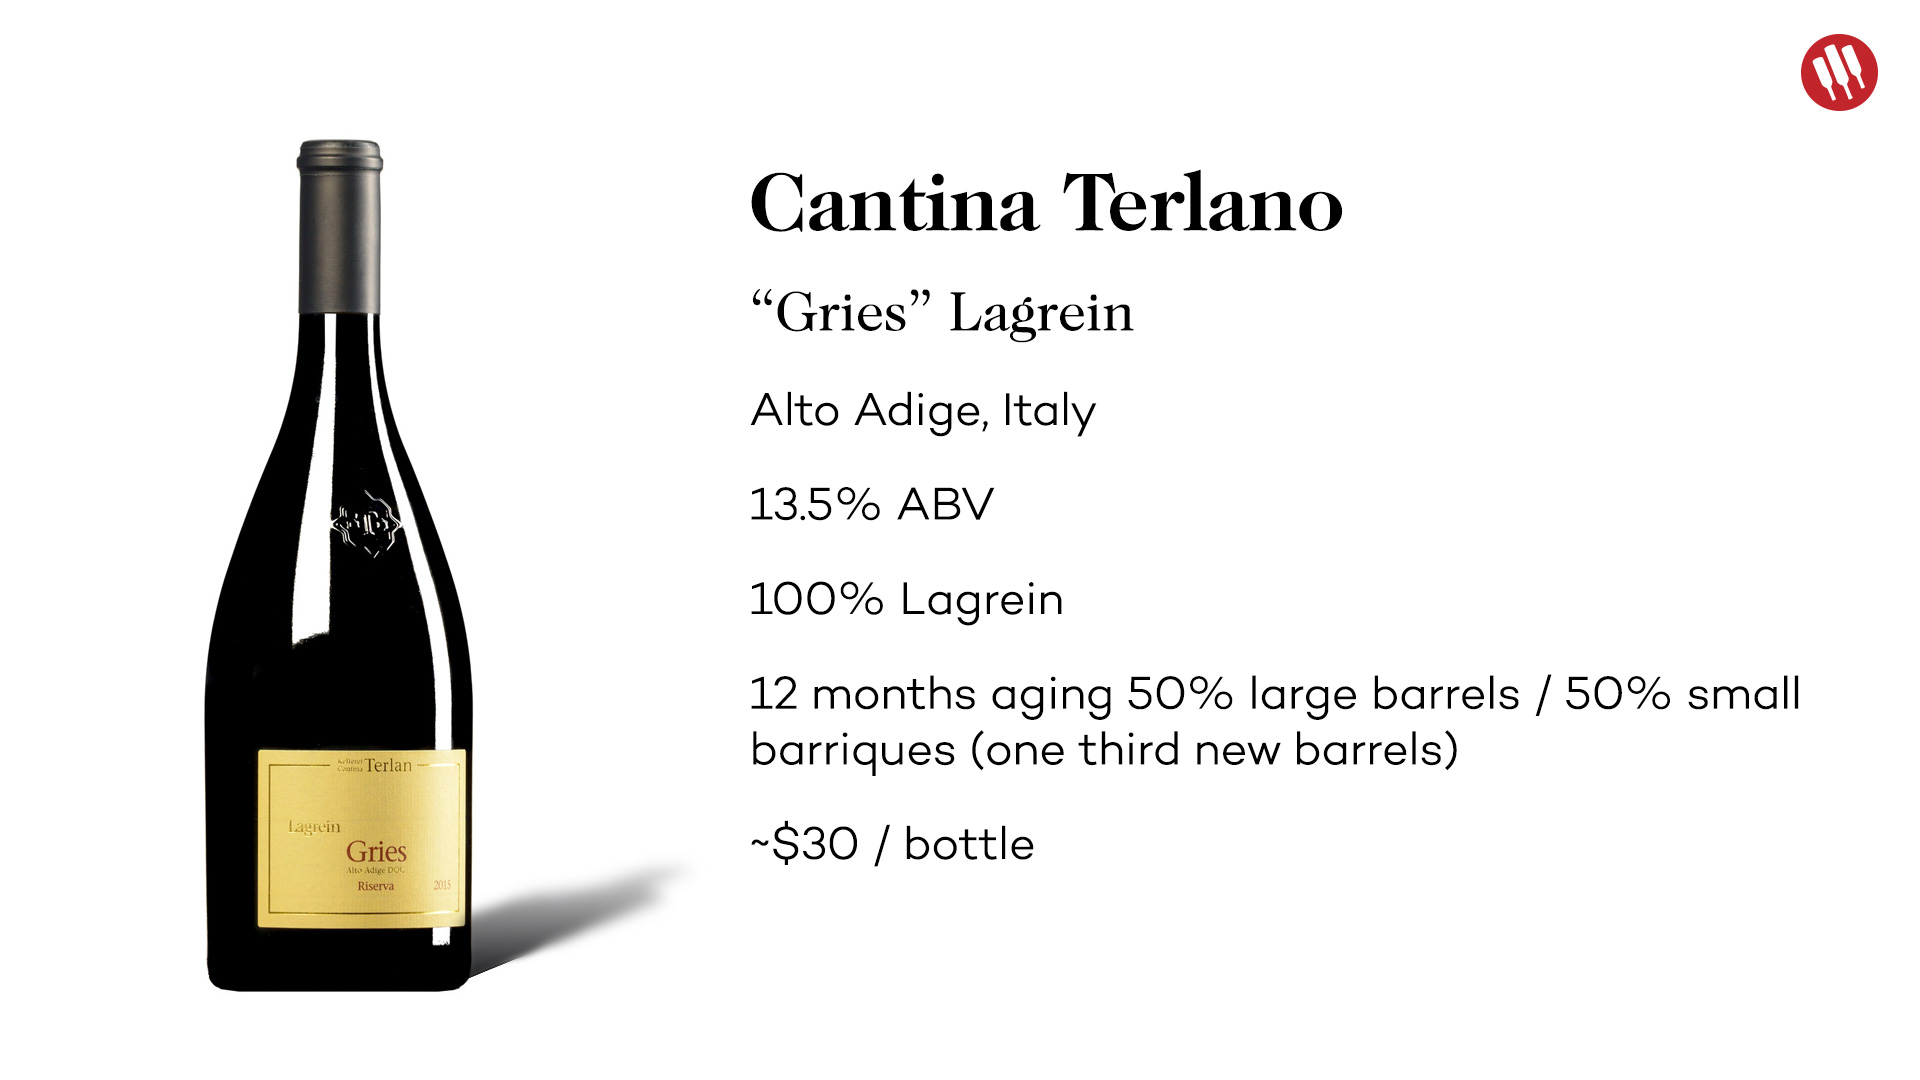 Cantina Terlano Gries Lagrein from Alto Adige tech sheet